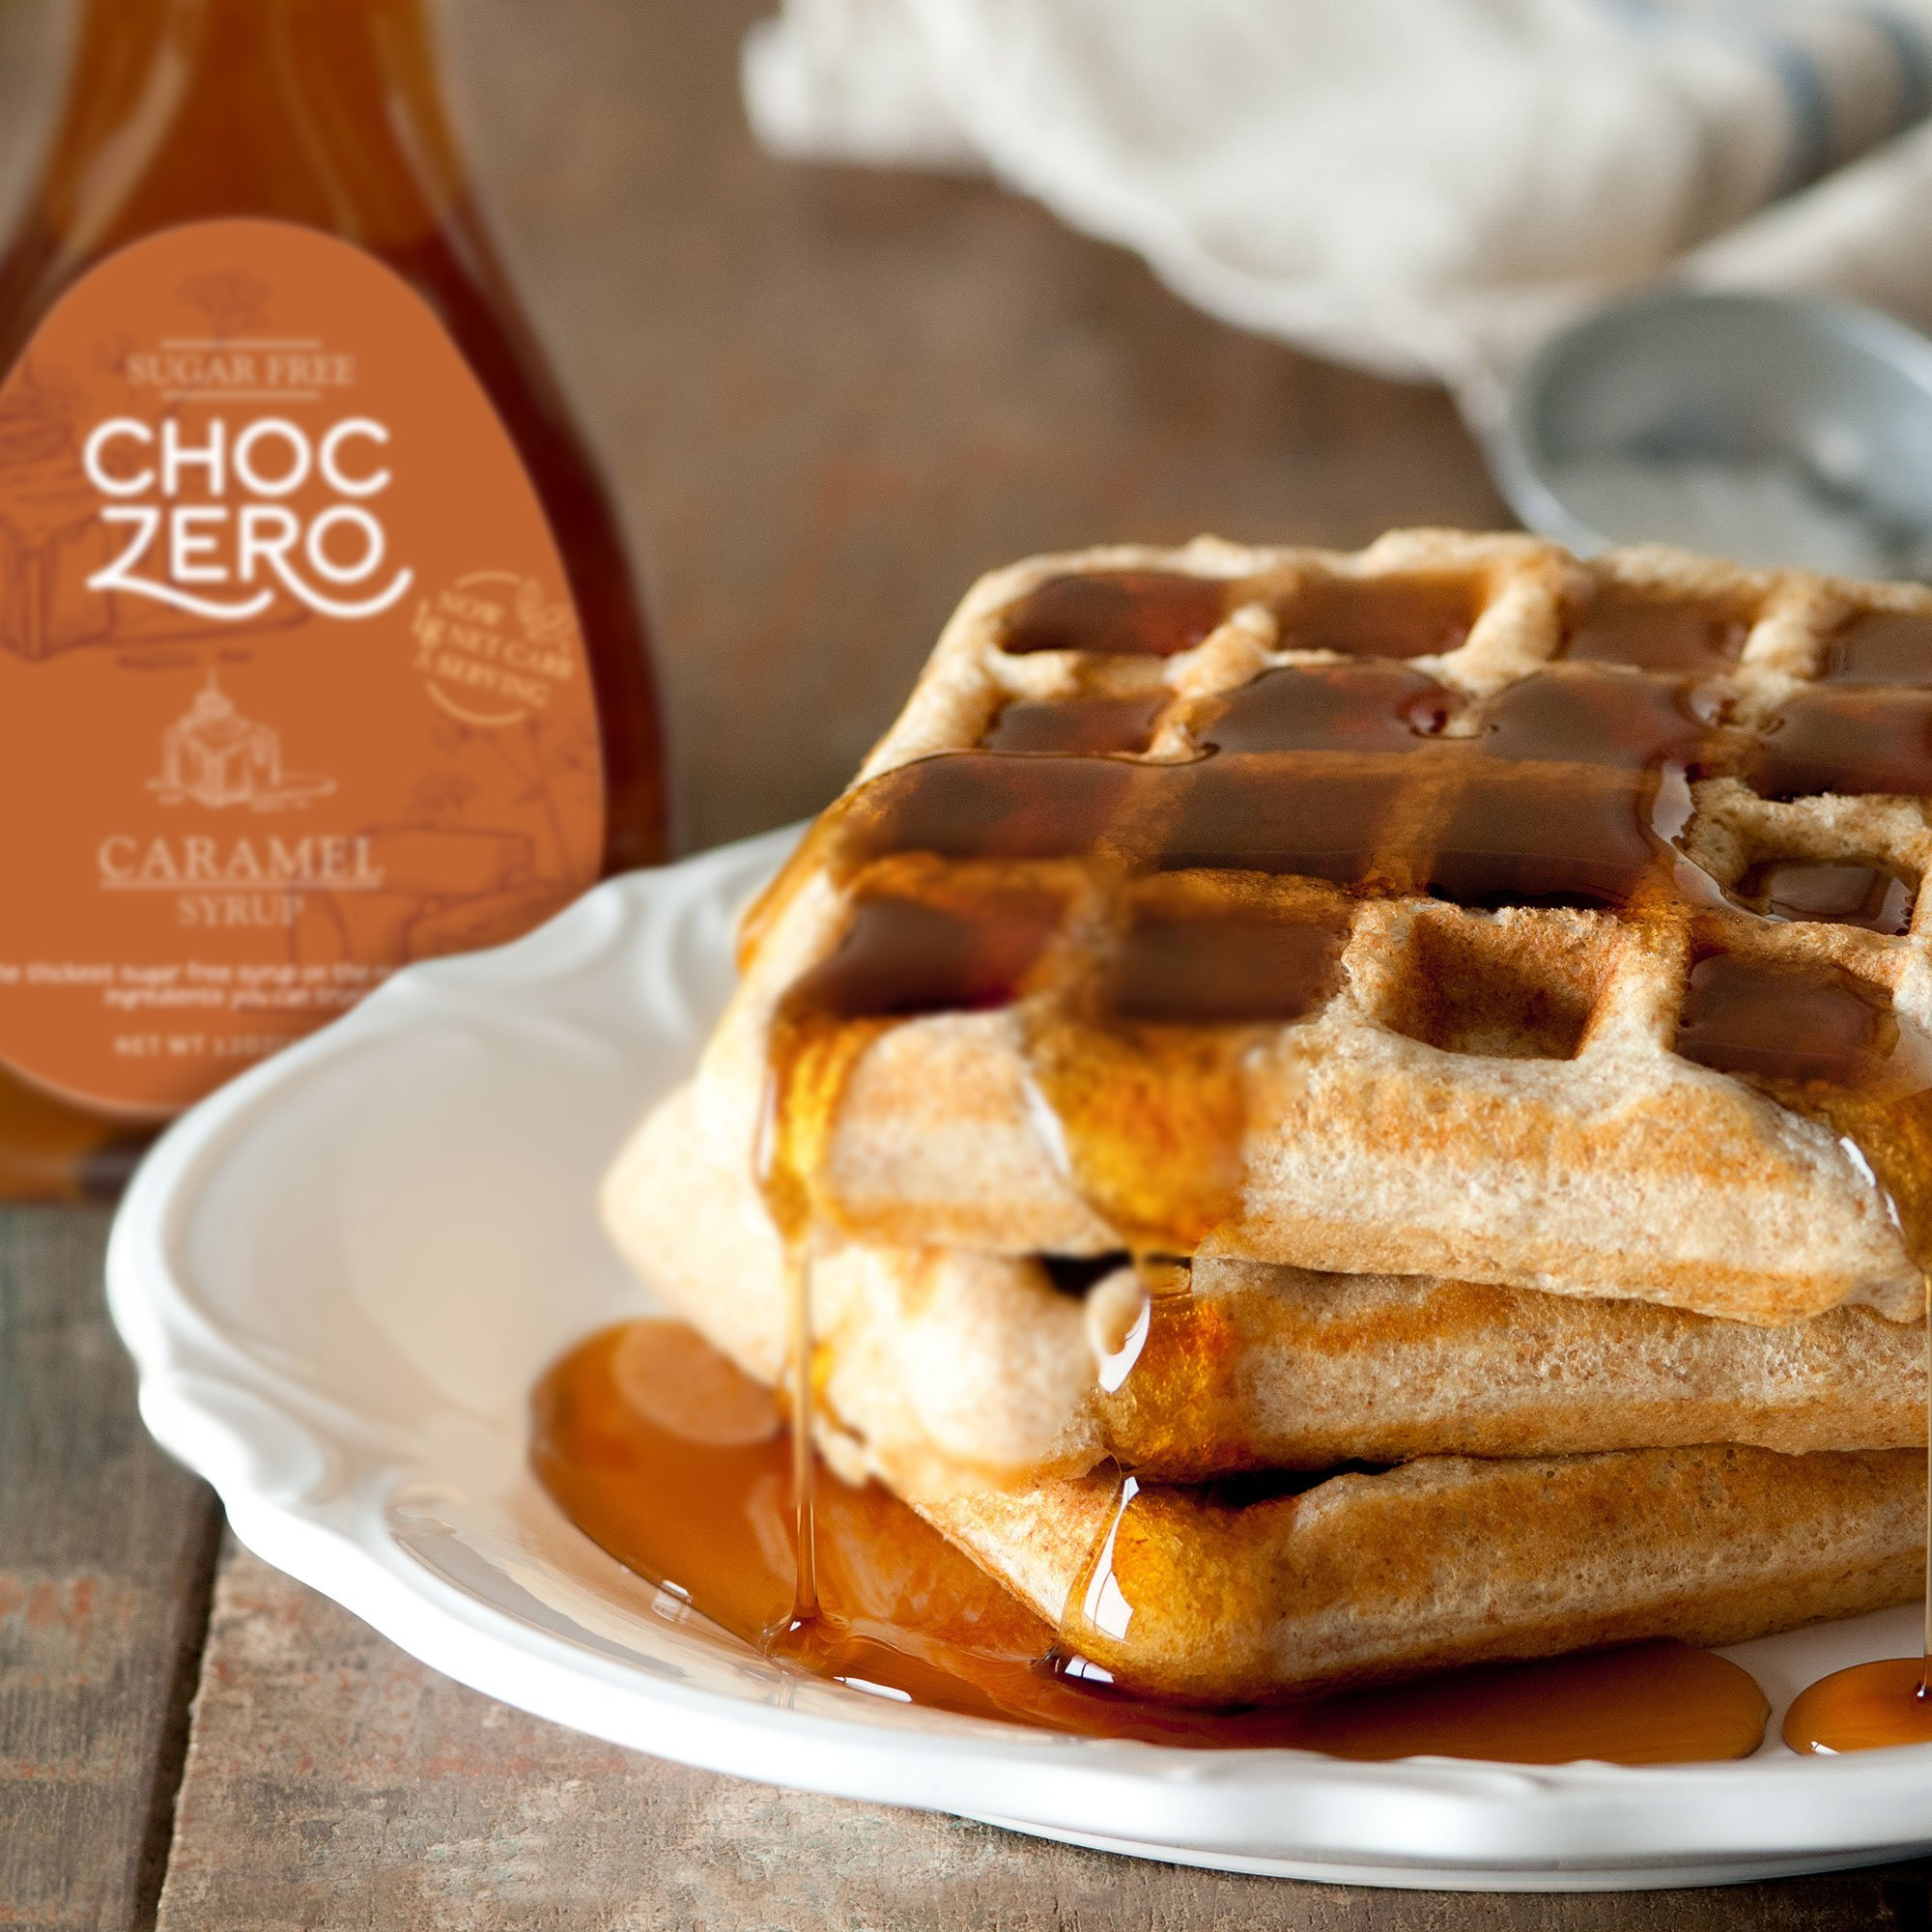 ChocZero Syrup Variety Pack. Sugar-free, Low Carb, No Preservatives. Thick and Rich. No Sugar Alcohol, Gluten-Free. 3 Bottles (Chocolate, Caramel, Maple) by ChocZero (Image #3)